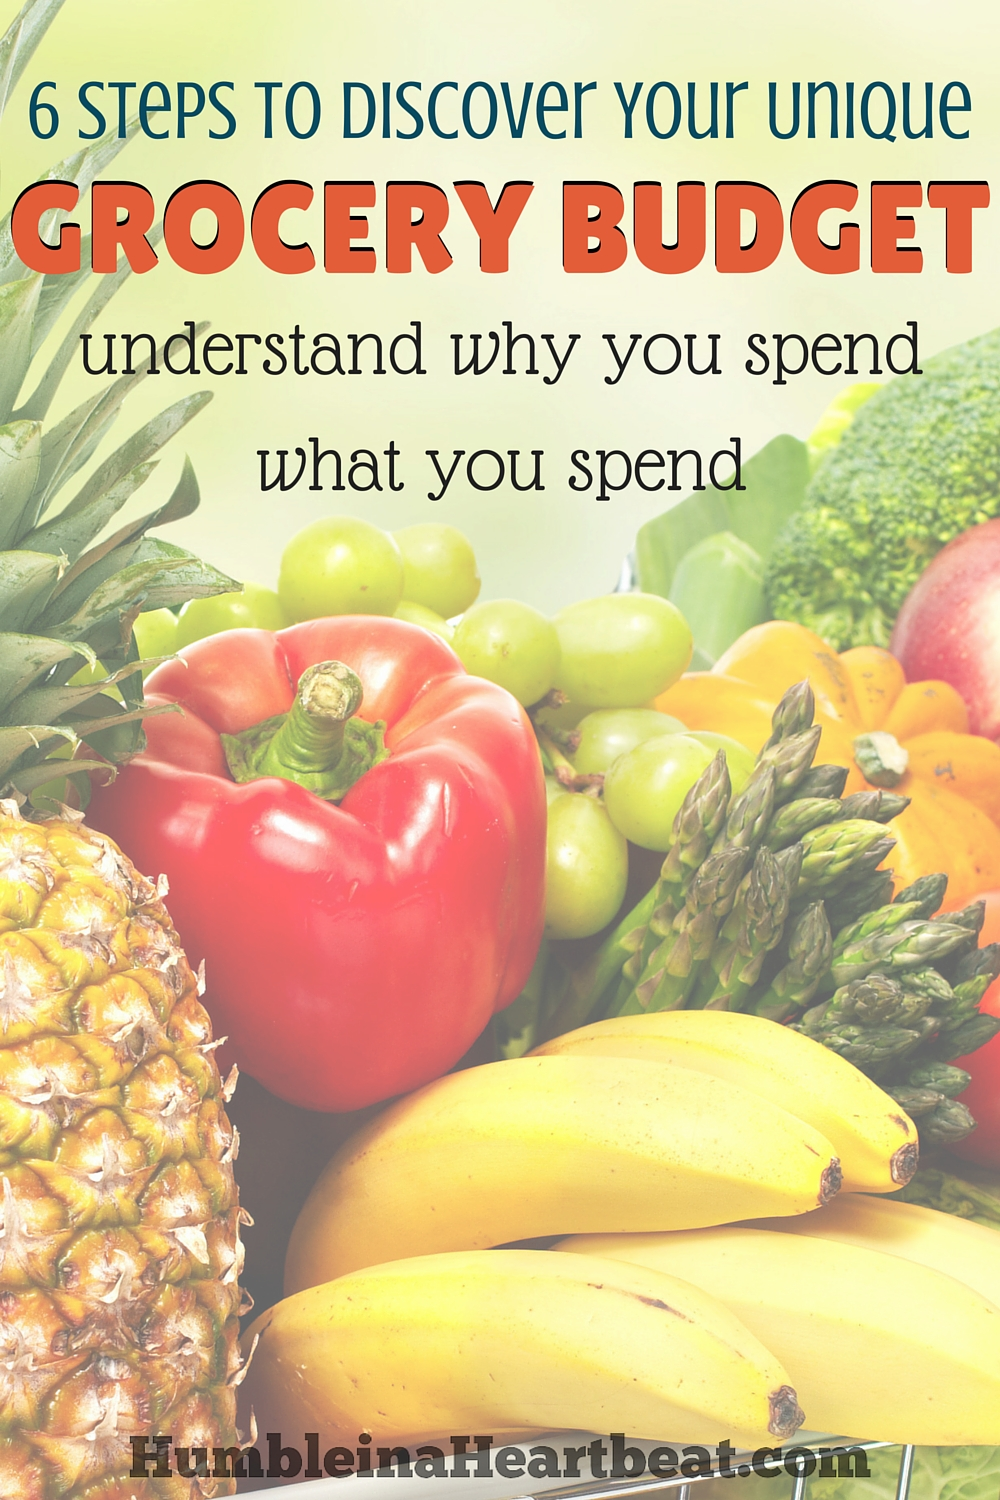 Why is it that you spend $700 a month on groceries? Take into account the factors that make up your family's unique grocery budget. Go through these 6 steps to figure out whether you can reduce it if you need to or increase it if that's necessary.